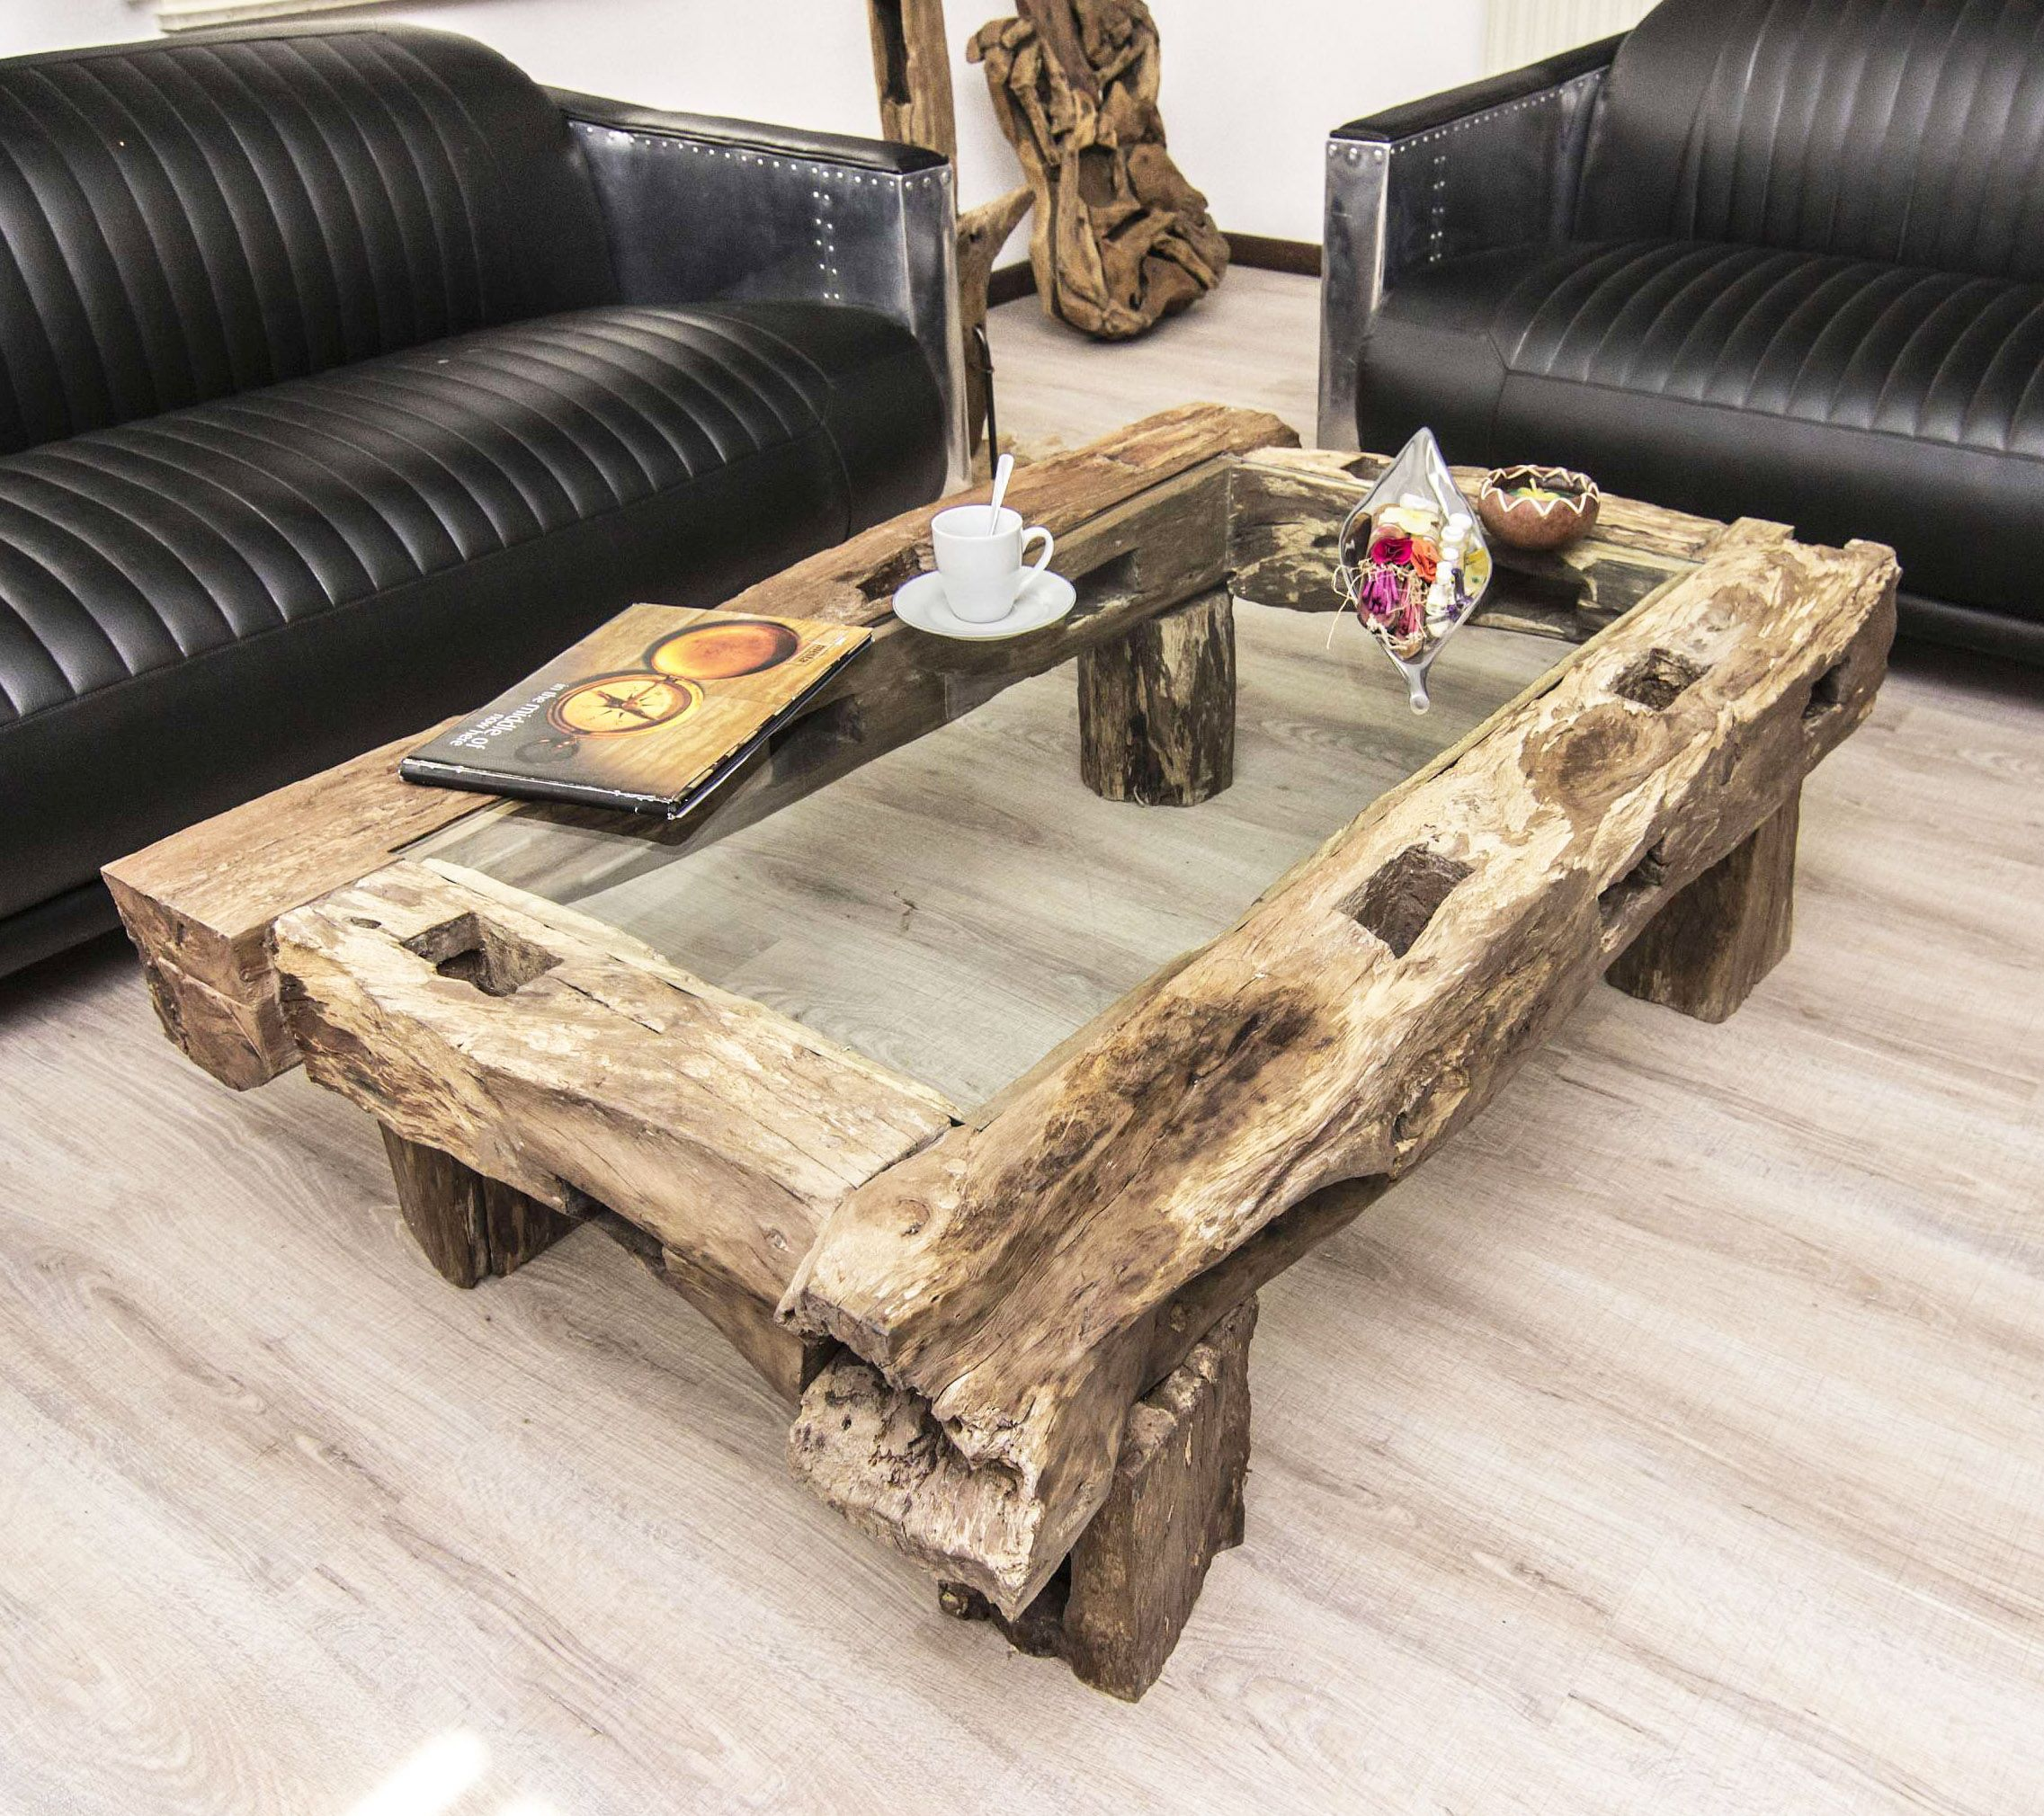 Wood Slab Table - Artisan Shipwreck Exotic Wood Slab Table